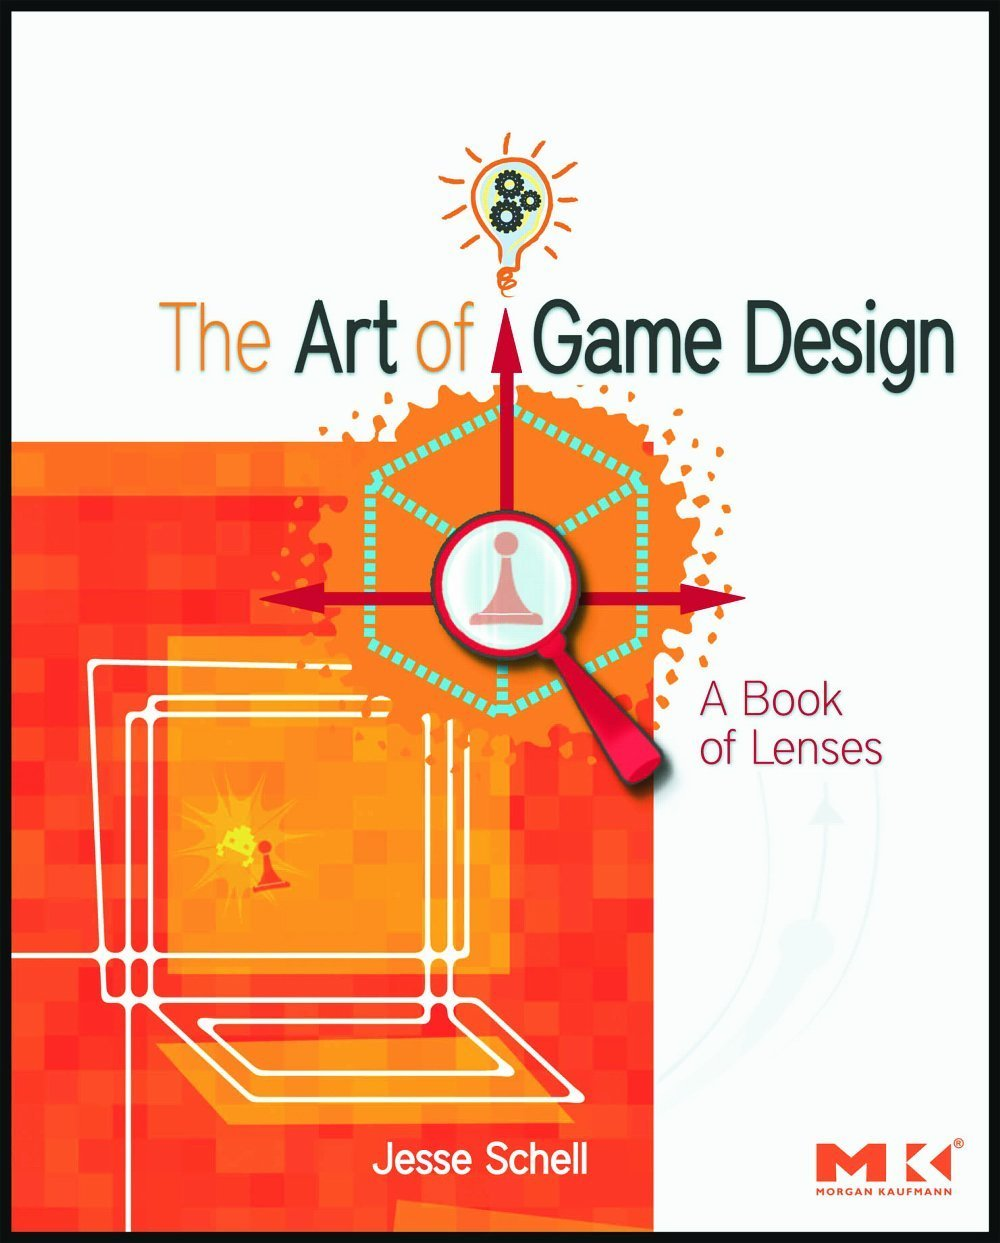 Jesse Schell - The Art of Game Design A Book of Lenses